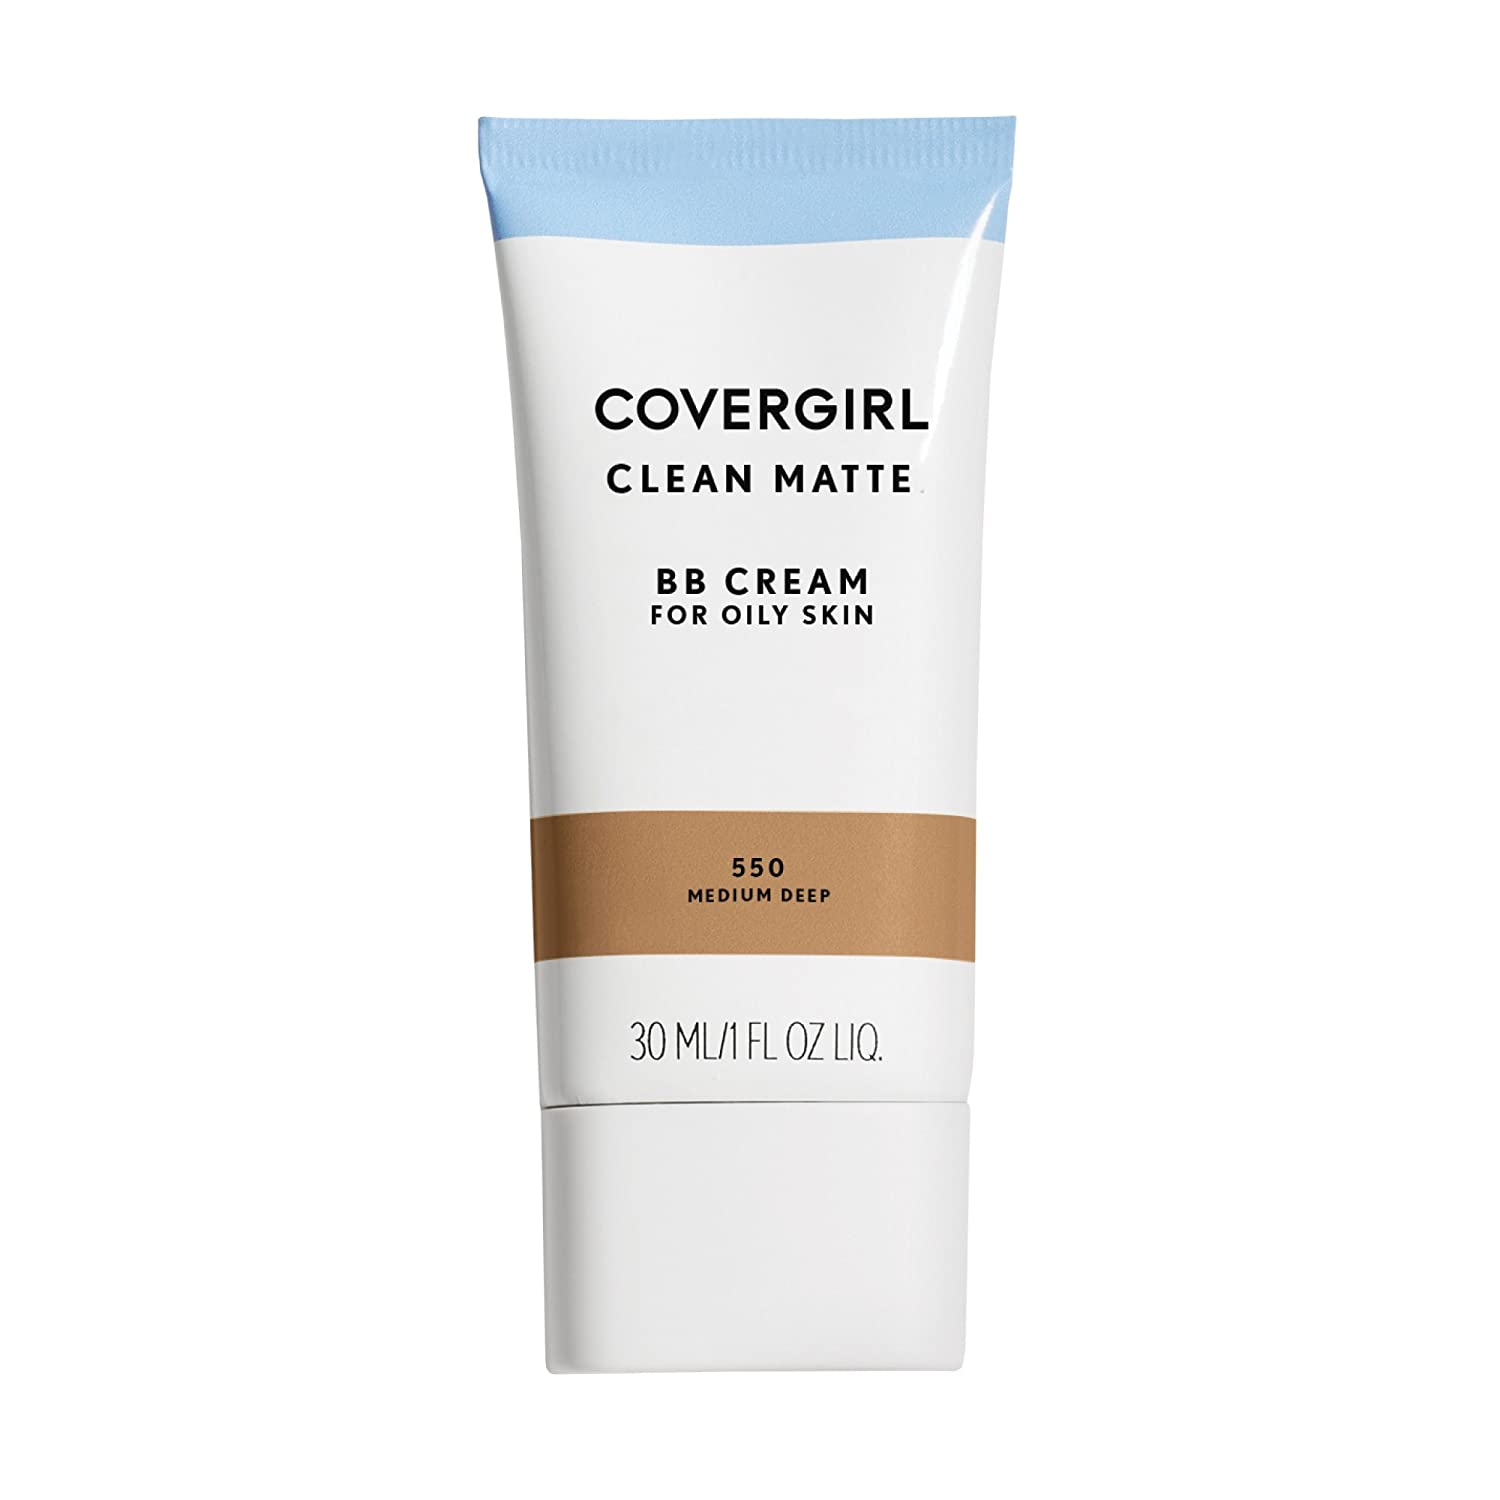 COVERGIRL - Clean Matte BB Cream - Packaging May Vary Coty 10022700251176